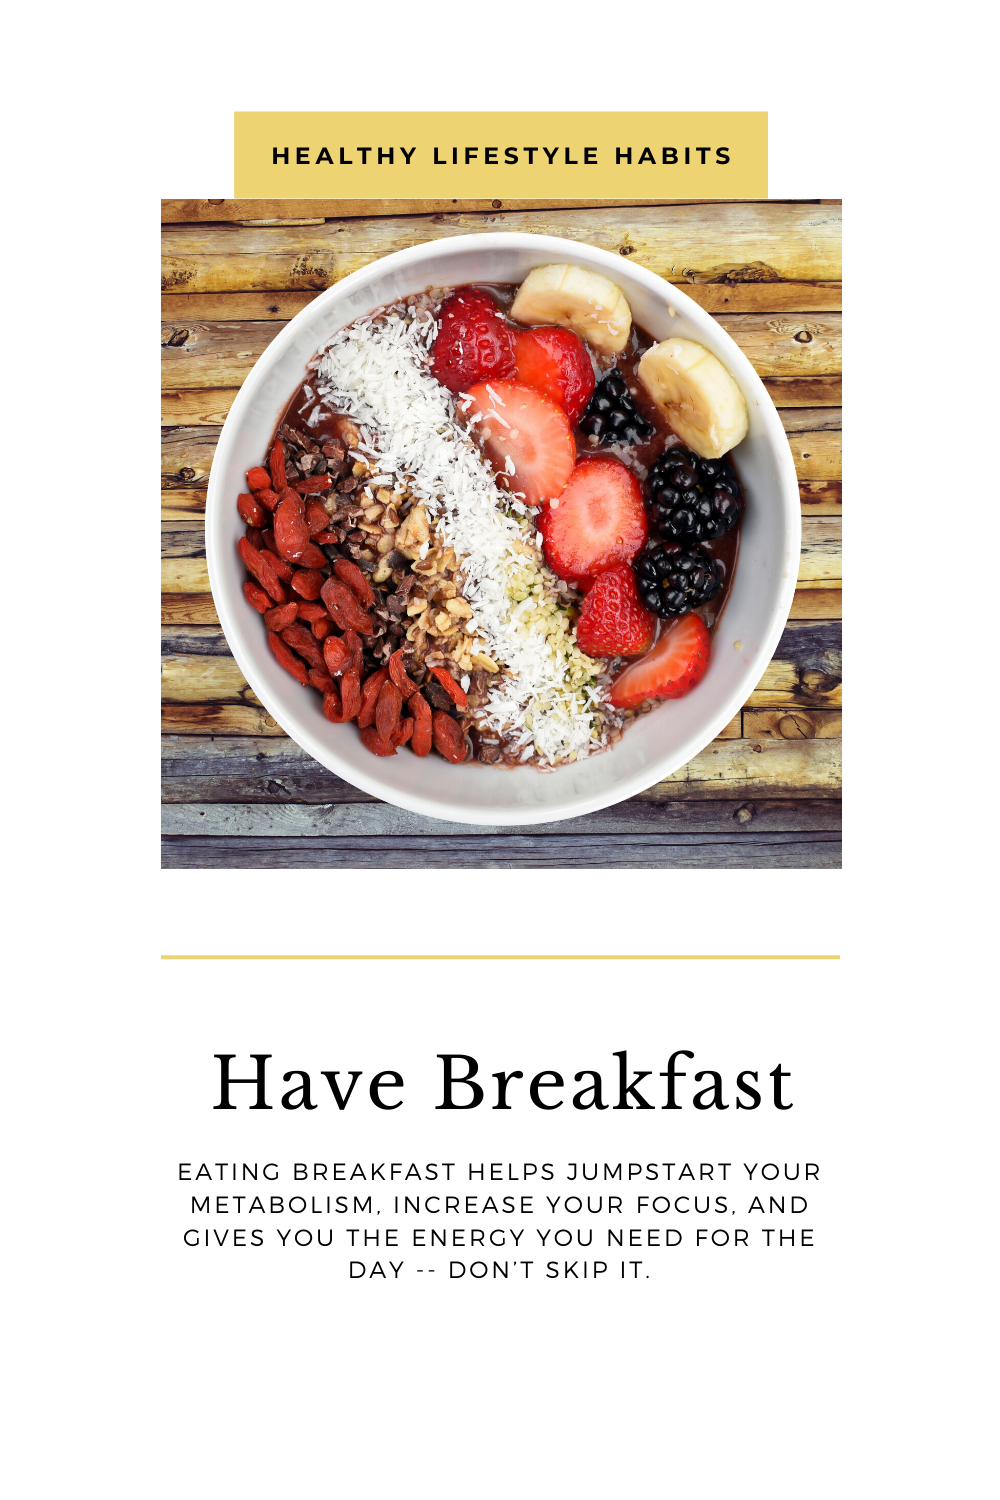 Eating breakfast helps jumpstart your metabolism, increase your focus, and gives you the energy you need for the day -- don't skip it. #HealthyLifestyle #HealthyHabits #HealthyLiving